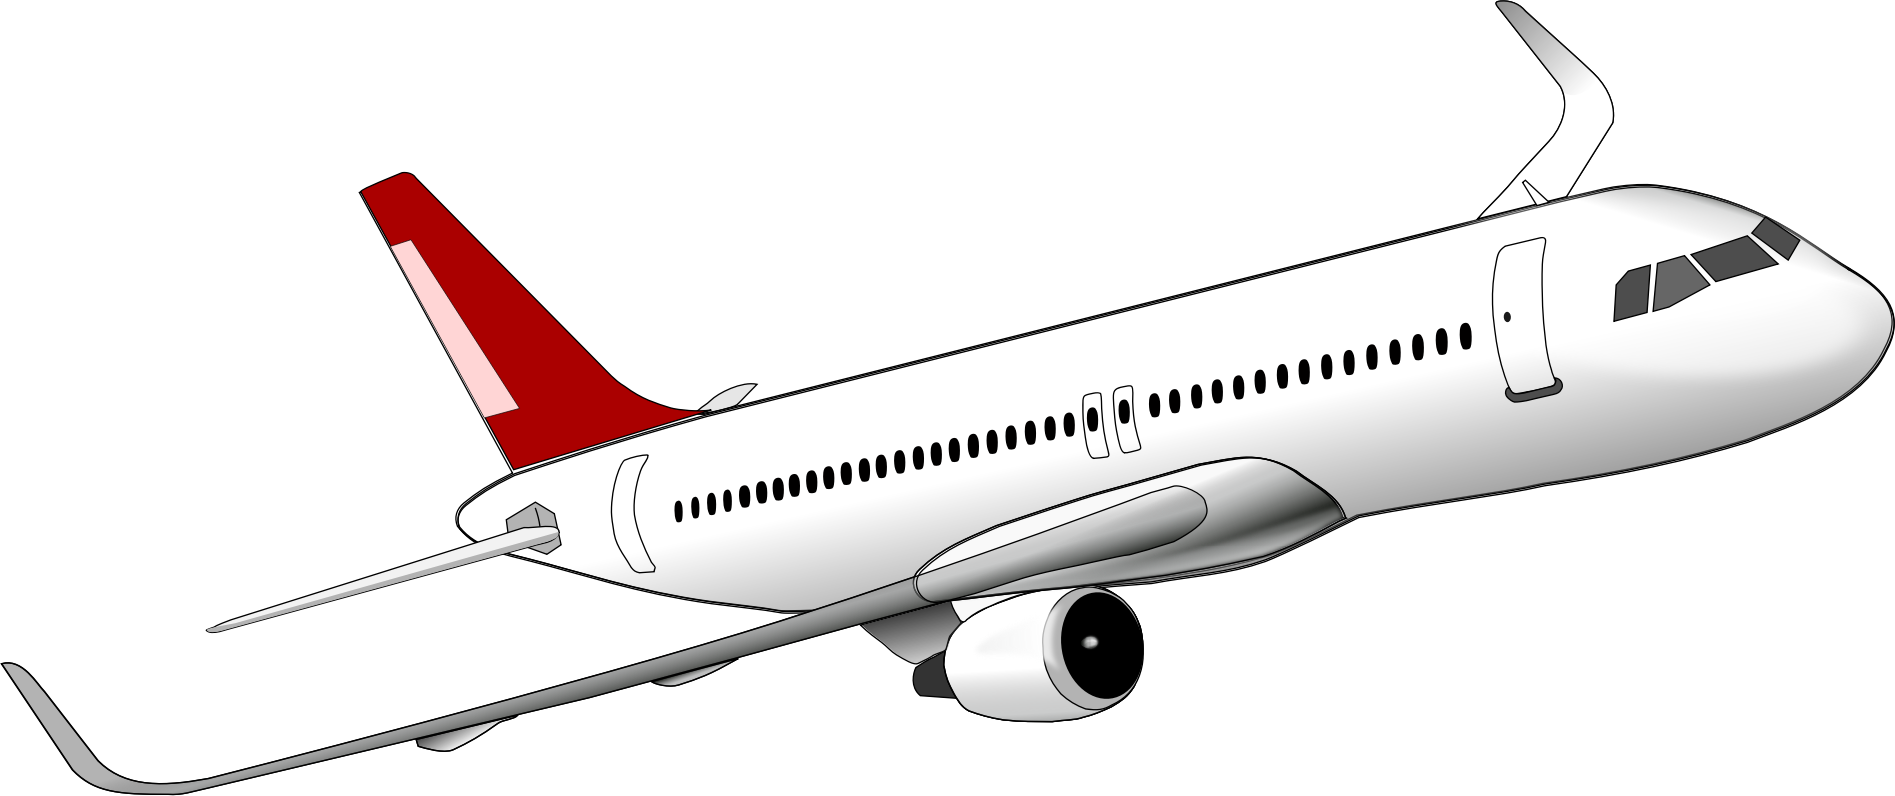 Airbus clipart #18, Download drawings